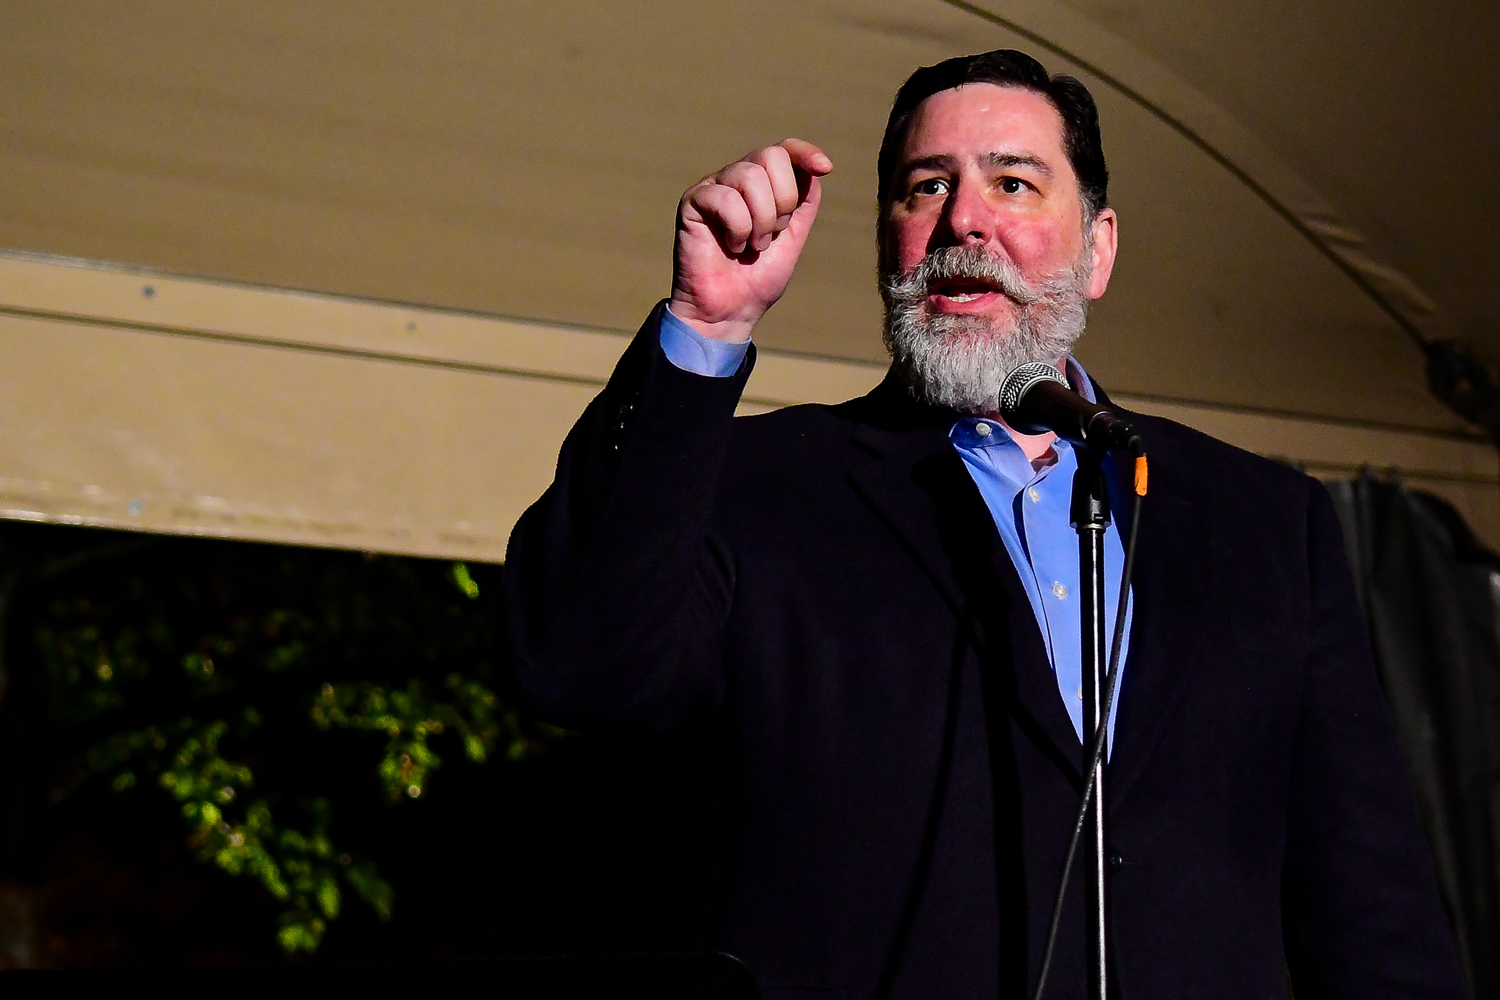 Mayor Bill Peduto recently worked with state and local politicians to introduce a bill to ban assault weapons in Pittsburgh.